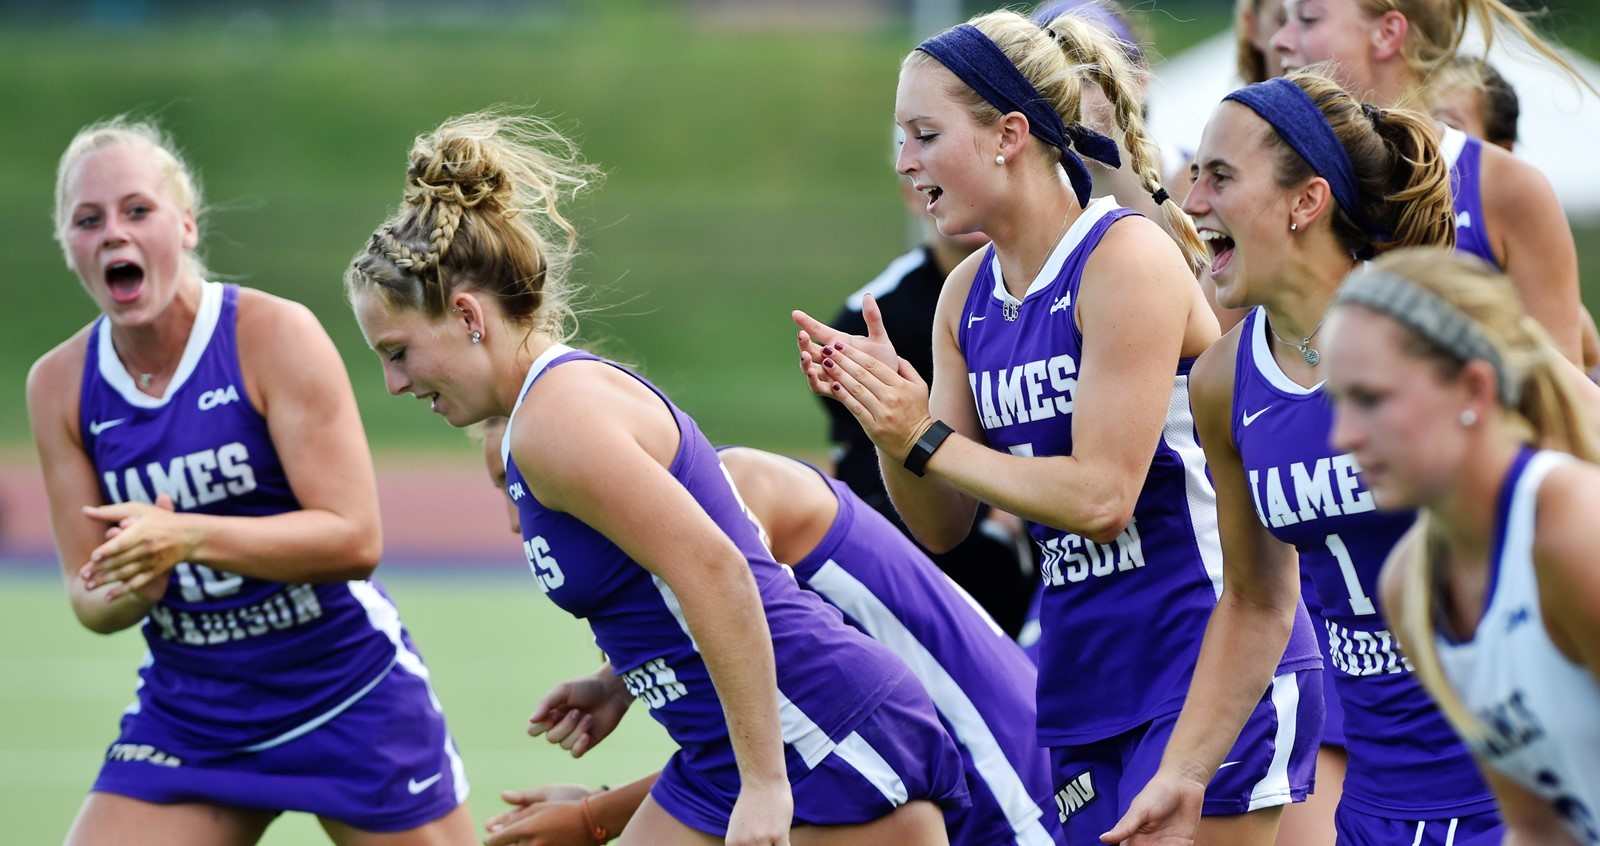 Field Hockey: Dukes Begin 2016 Ranked No. 19 in NFHCA Preseason Poll